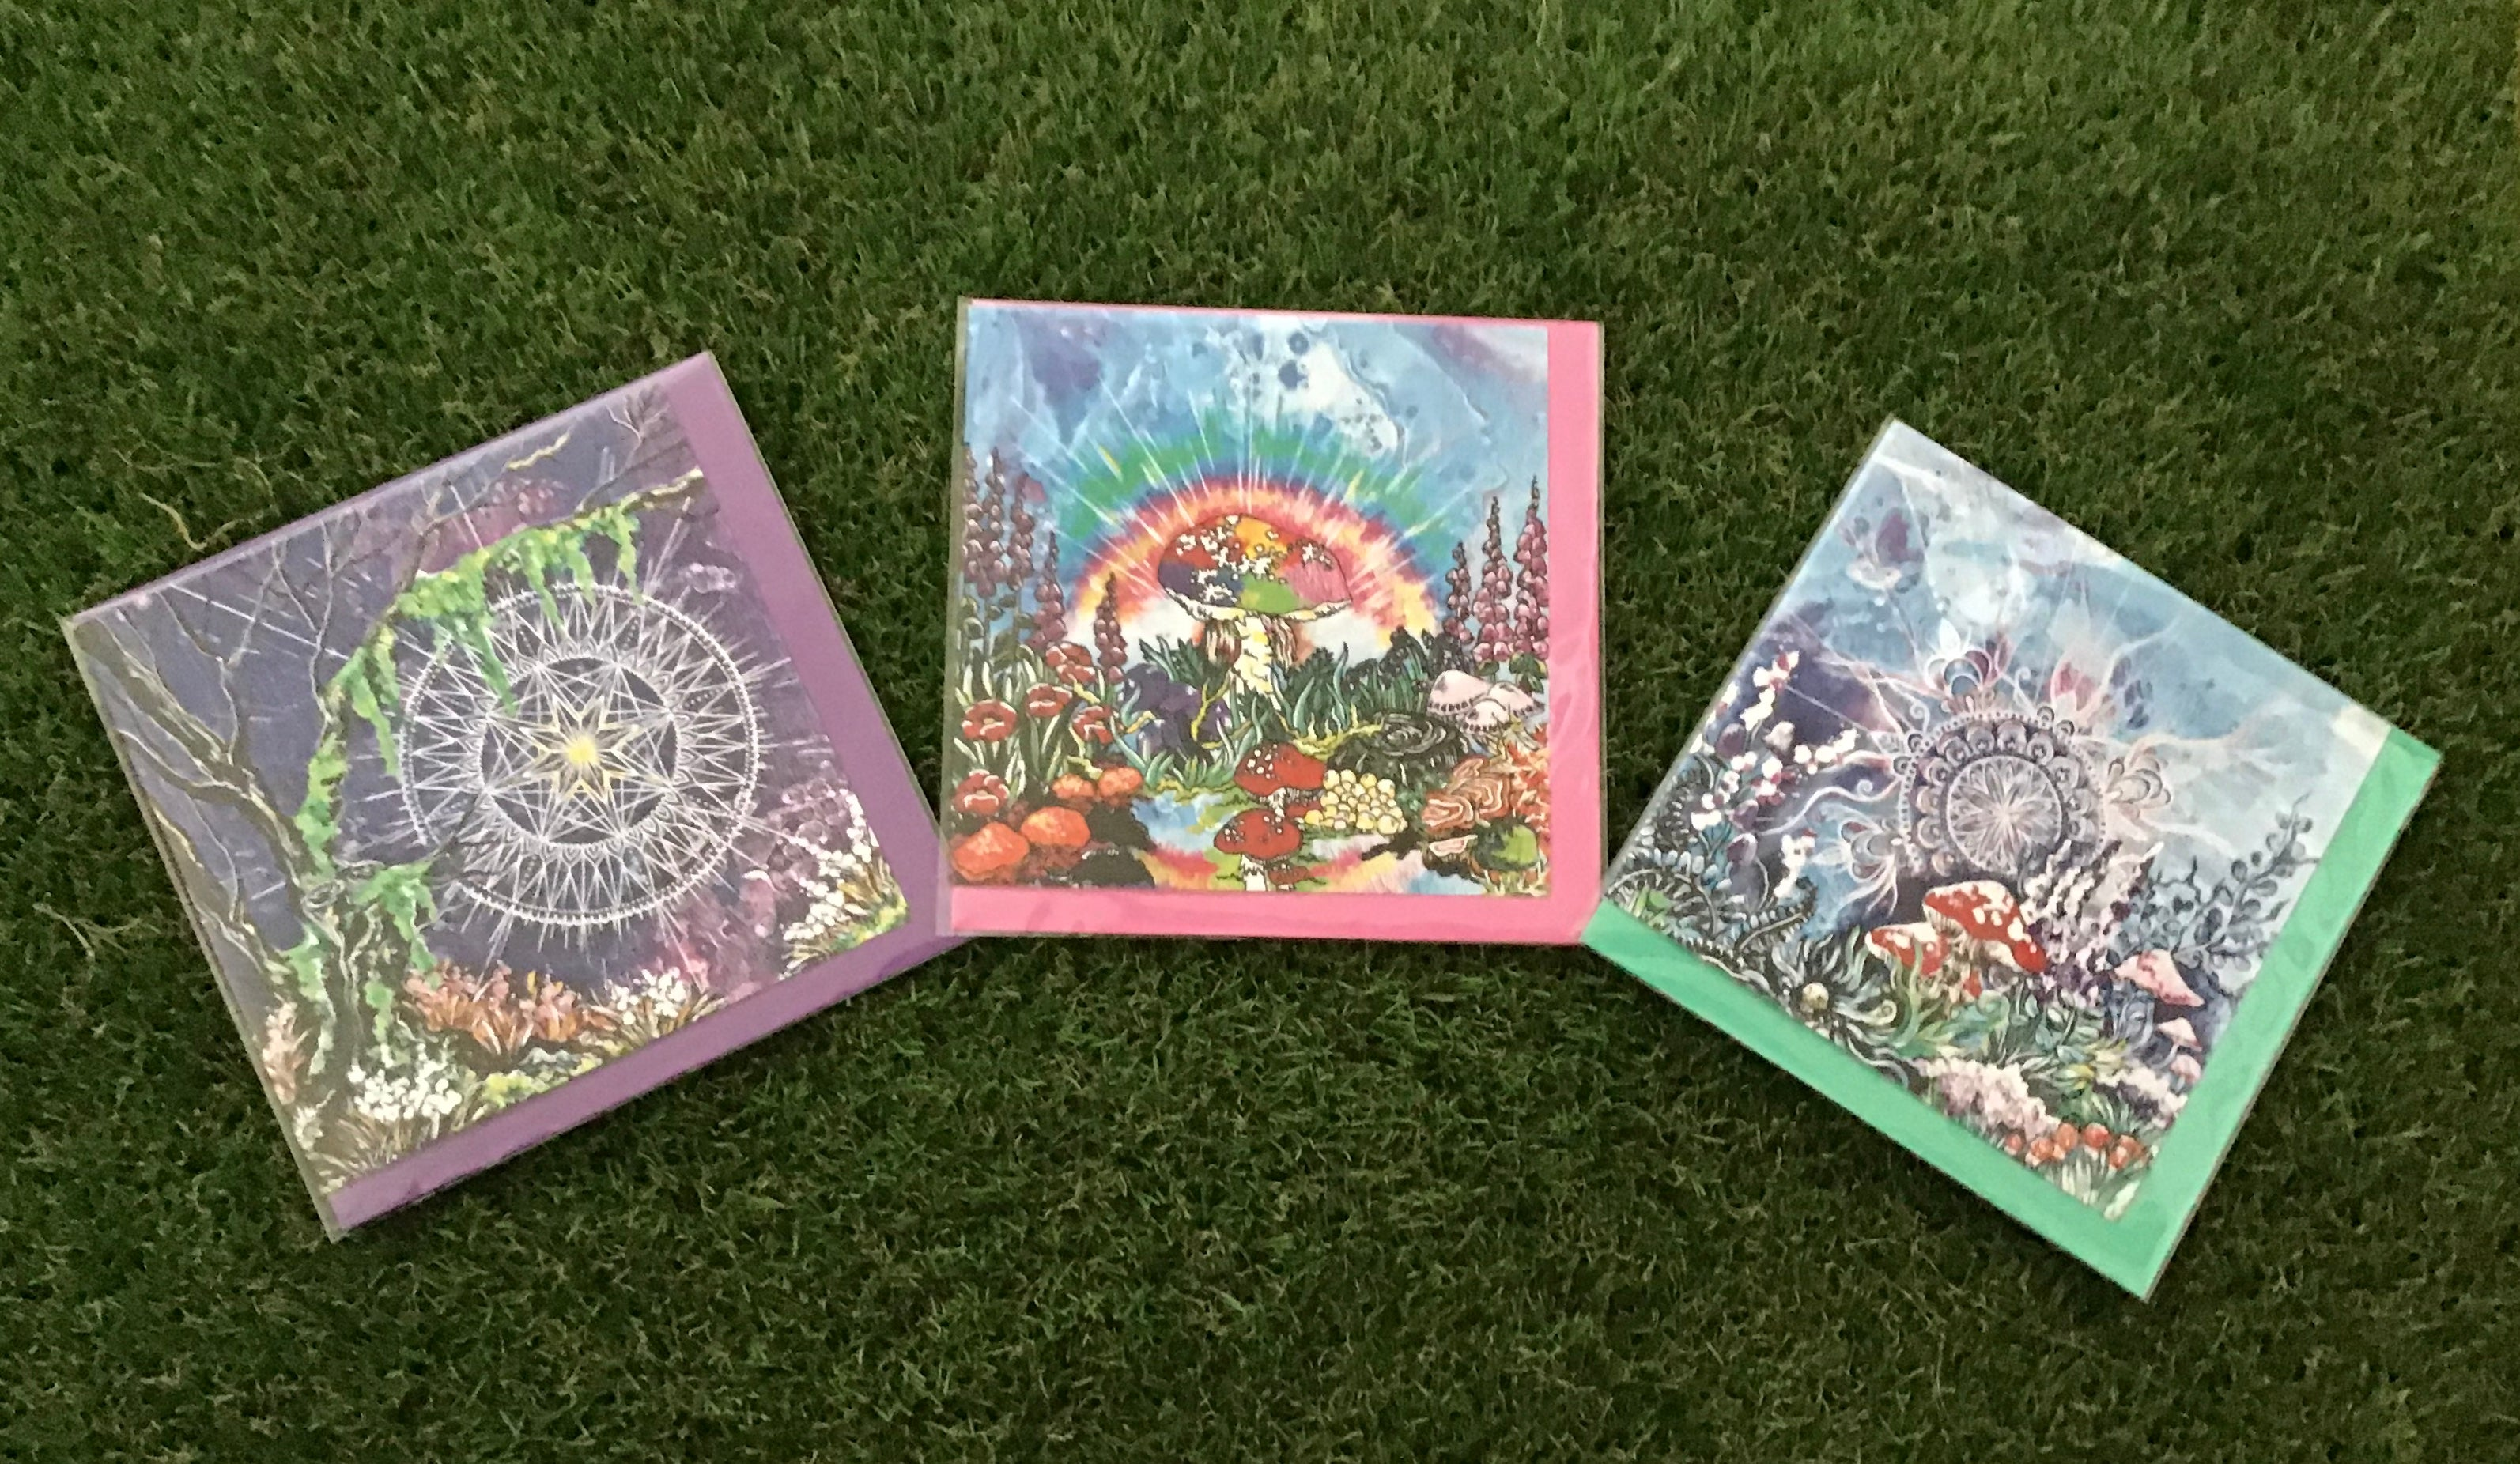 Mushroom forest art card collection